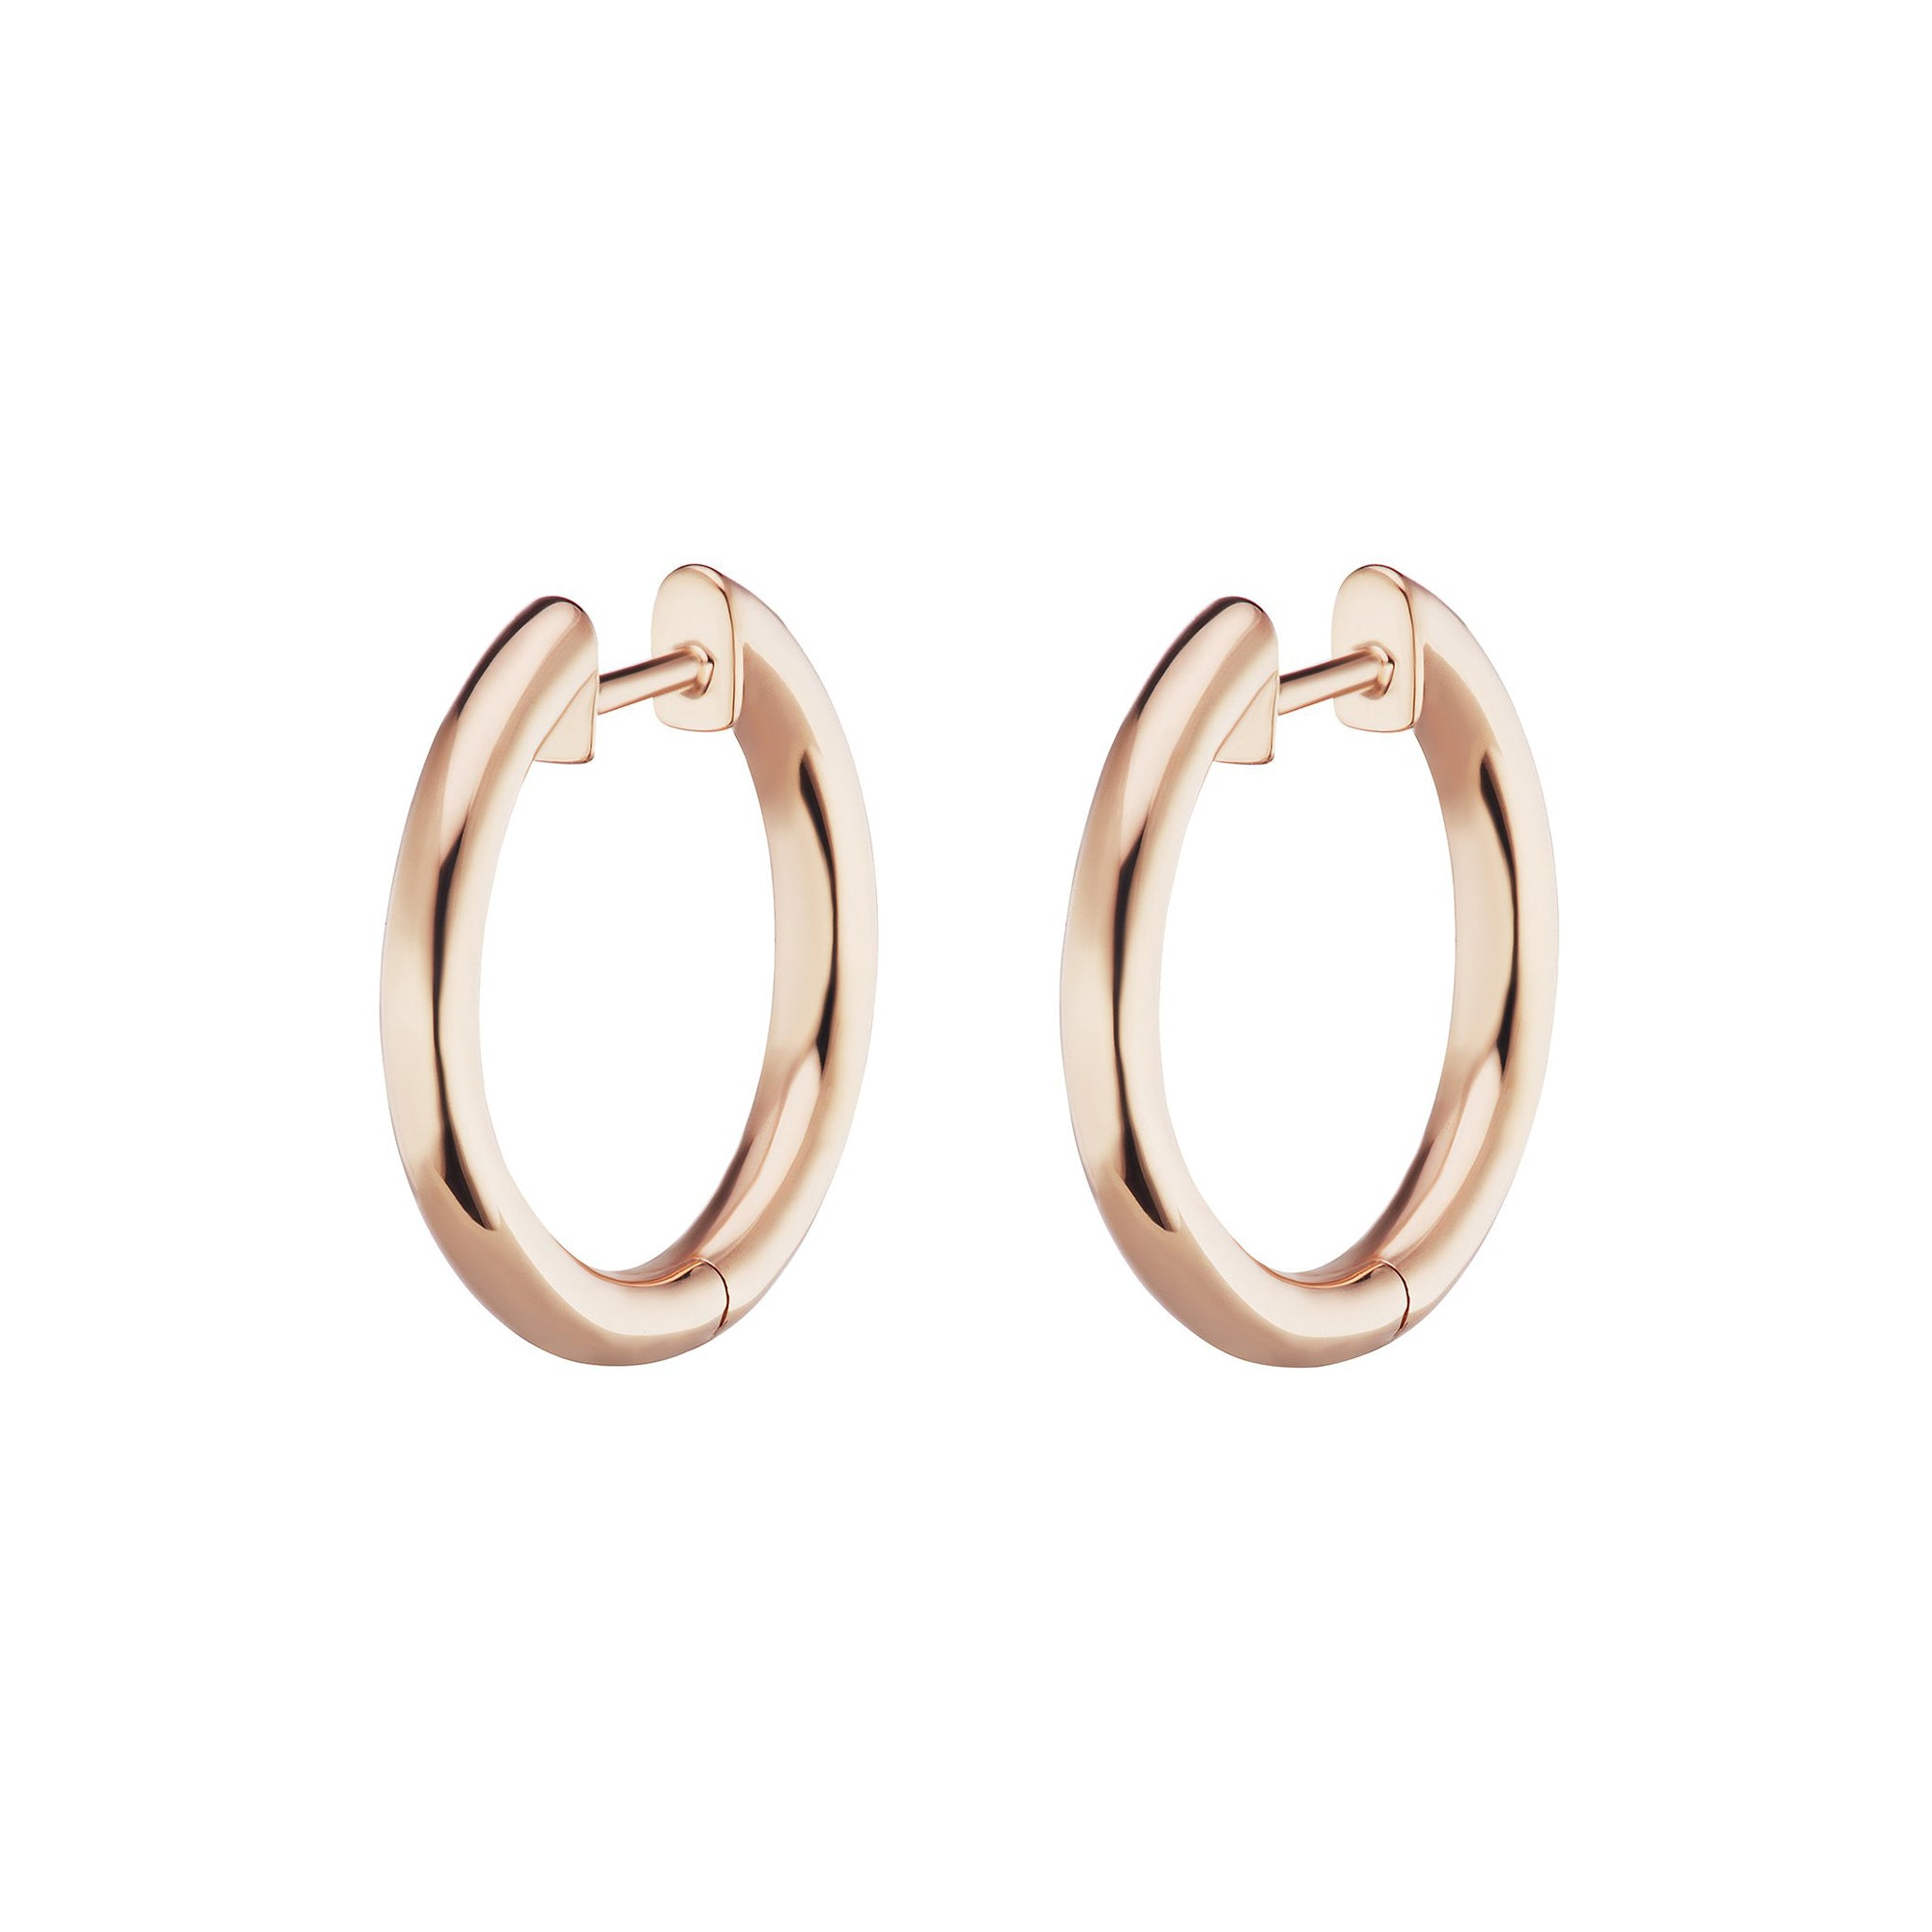 Traditional Espionne Hoops 13mm - Altruist - Earrings | Broken English Jewelry